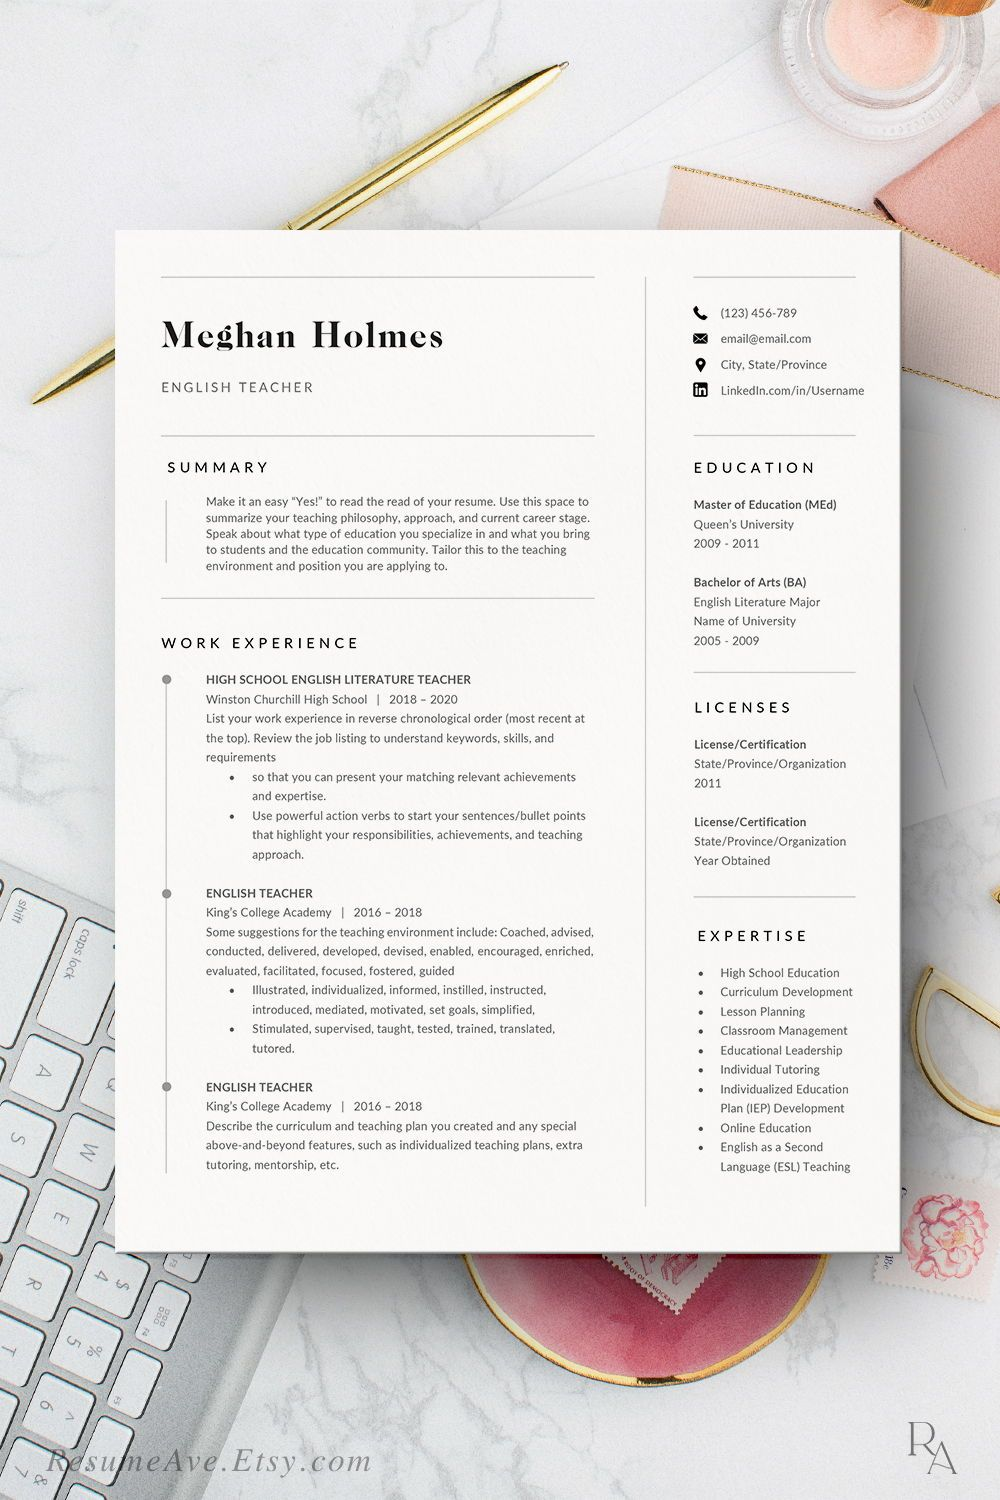 Elegant Teacher Resume Template Word And Cover Letter Etsy In 2020 Teacher Resume Template Resume Template Word Resume Template